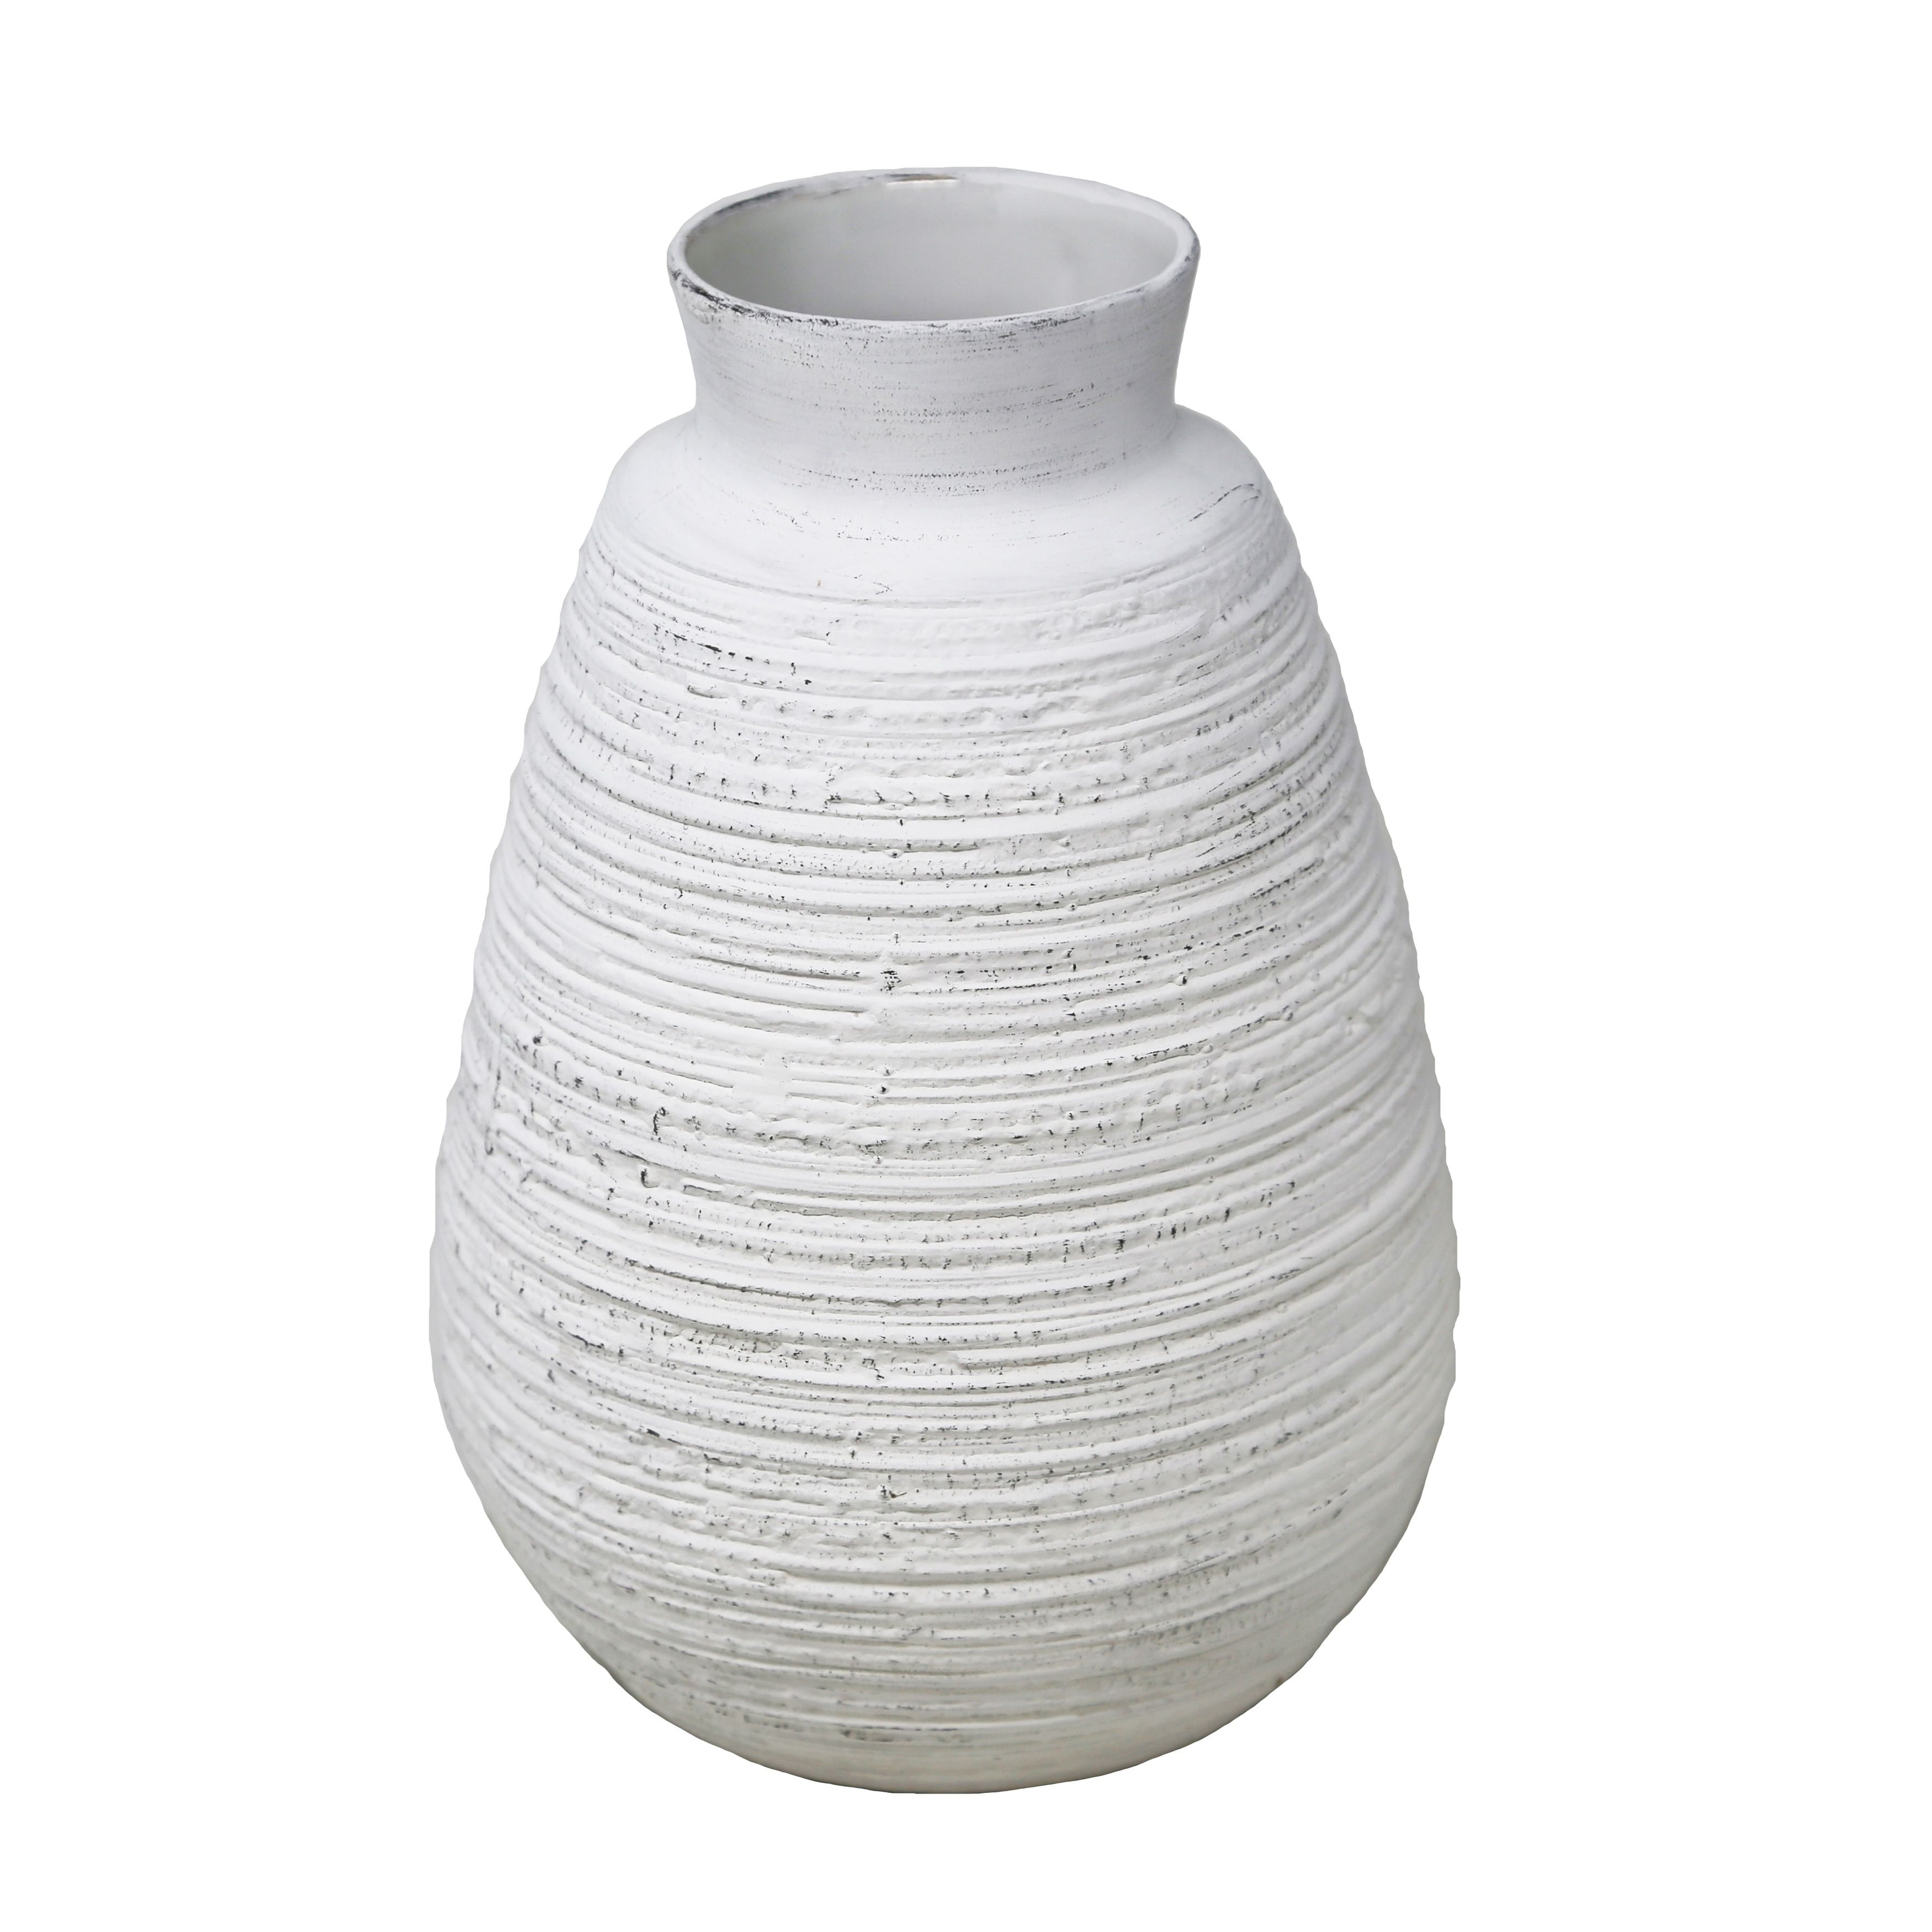 Ceramic Wire Brushed Texture Vase With Wide Open Mouth And Round